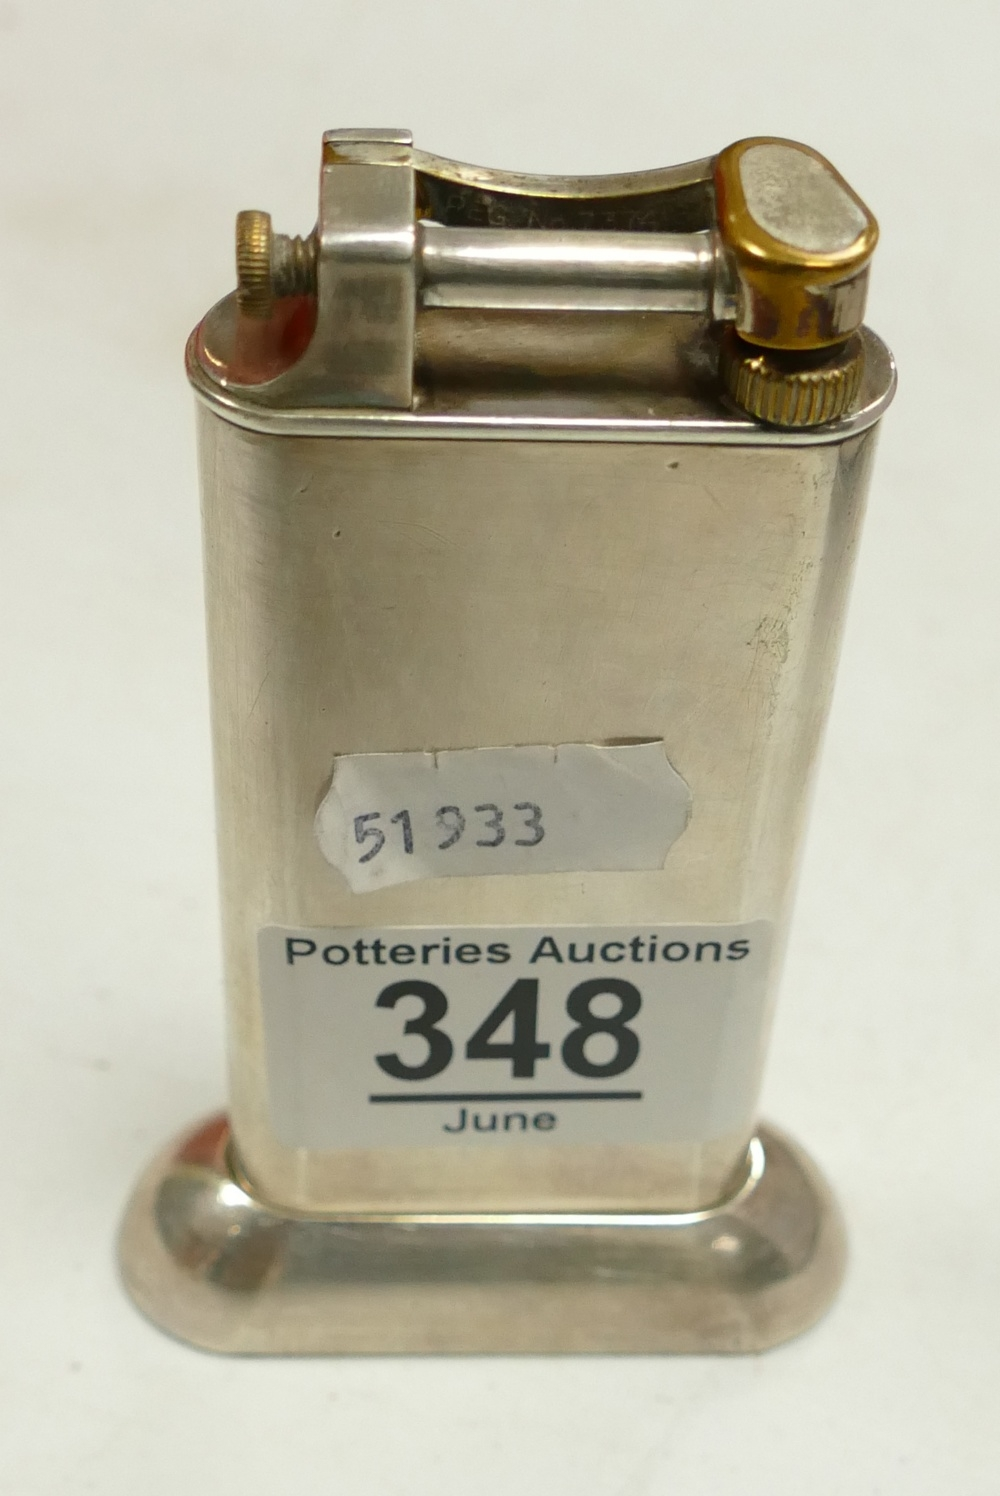 Dunhill Silver Plated Standard Table Cigarette Lighter: